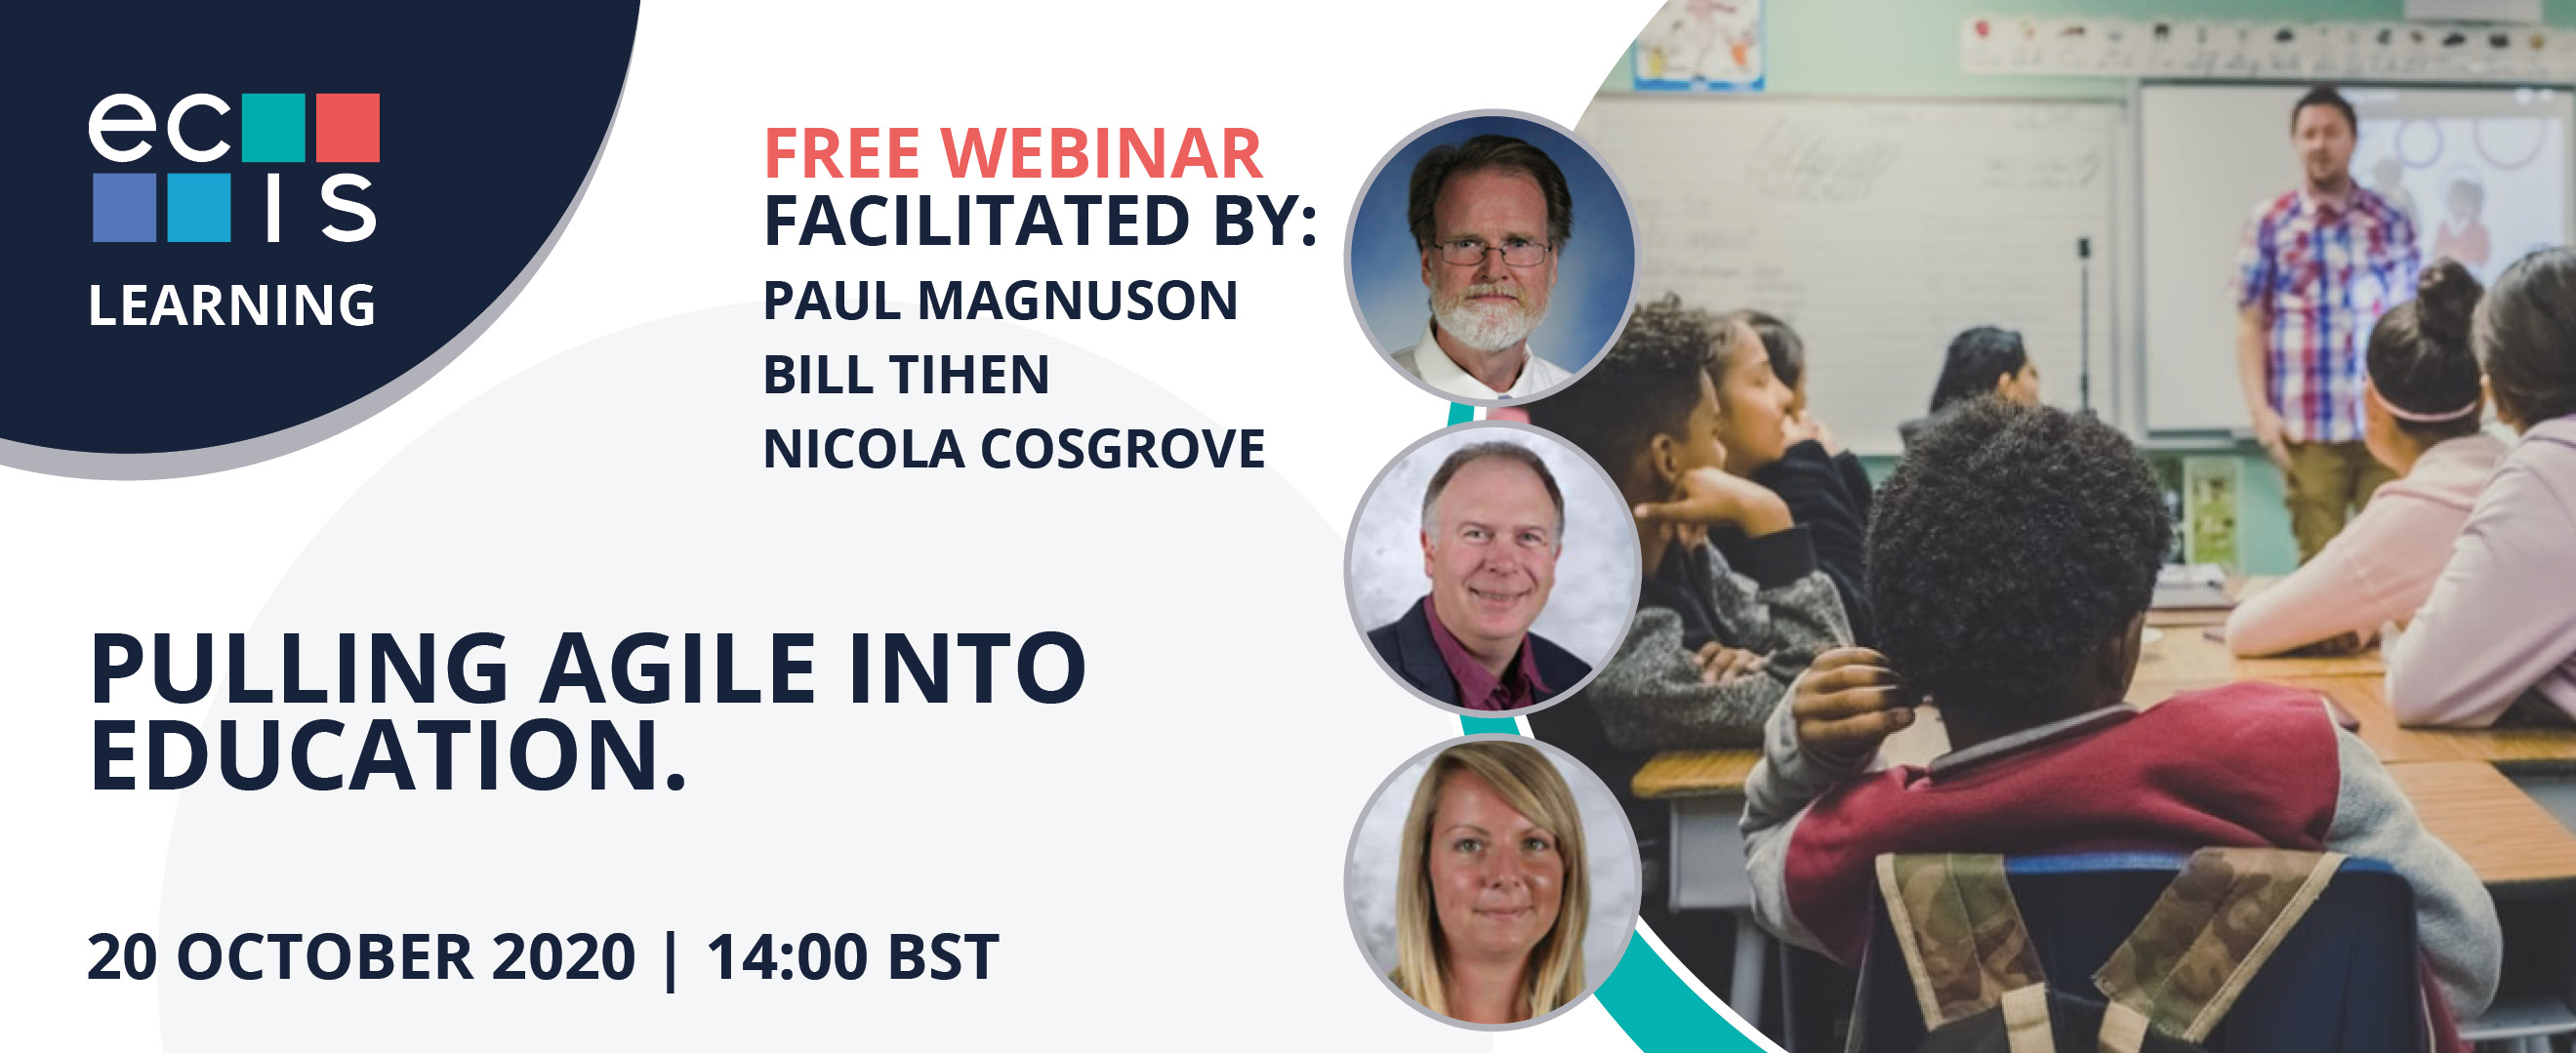 Webinar: Pulling agile into education